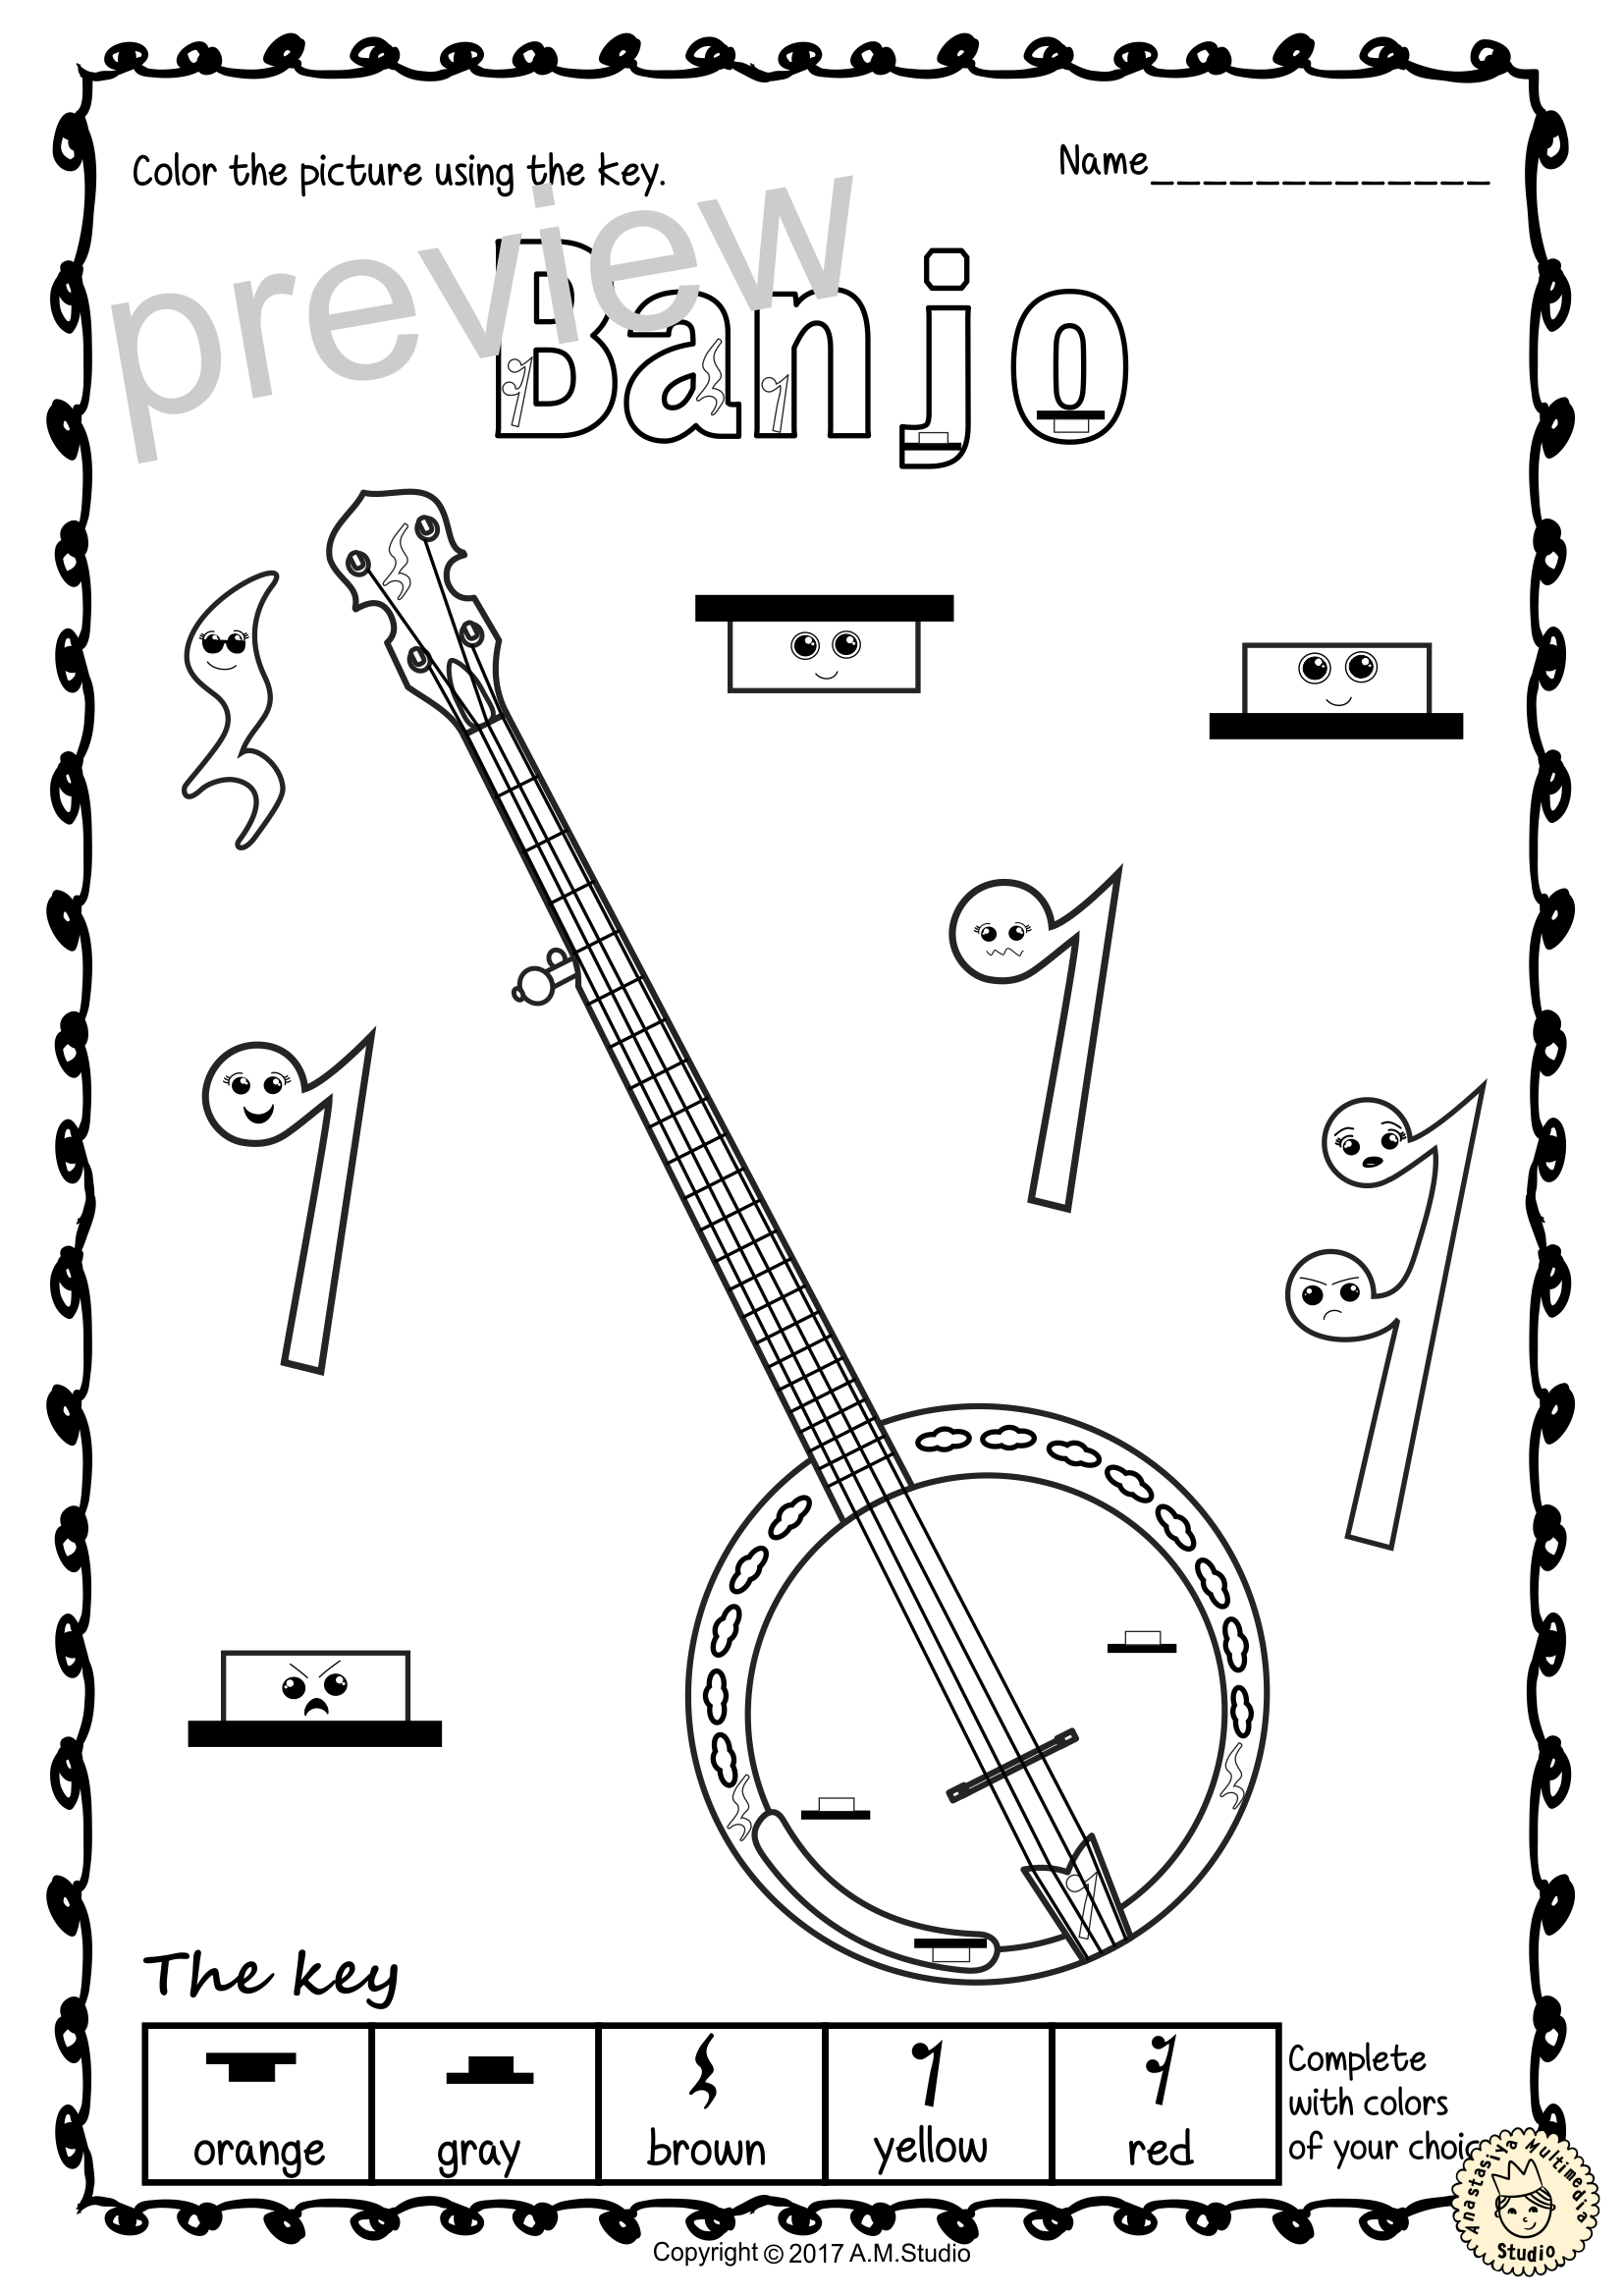 Teisco Wiring Diagrams - All Diagram Schematics on